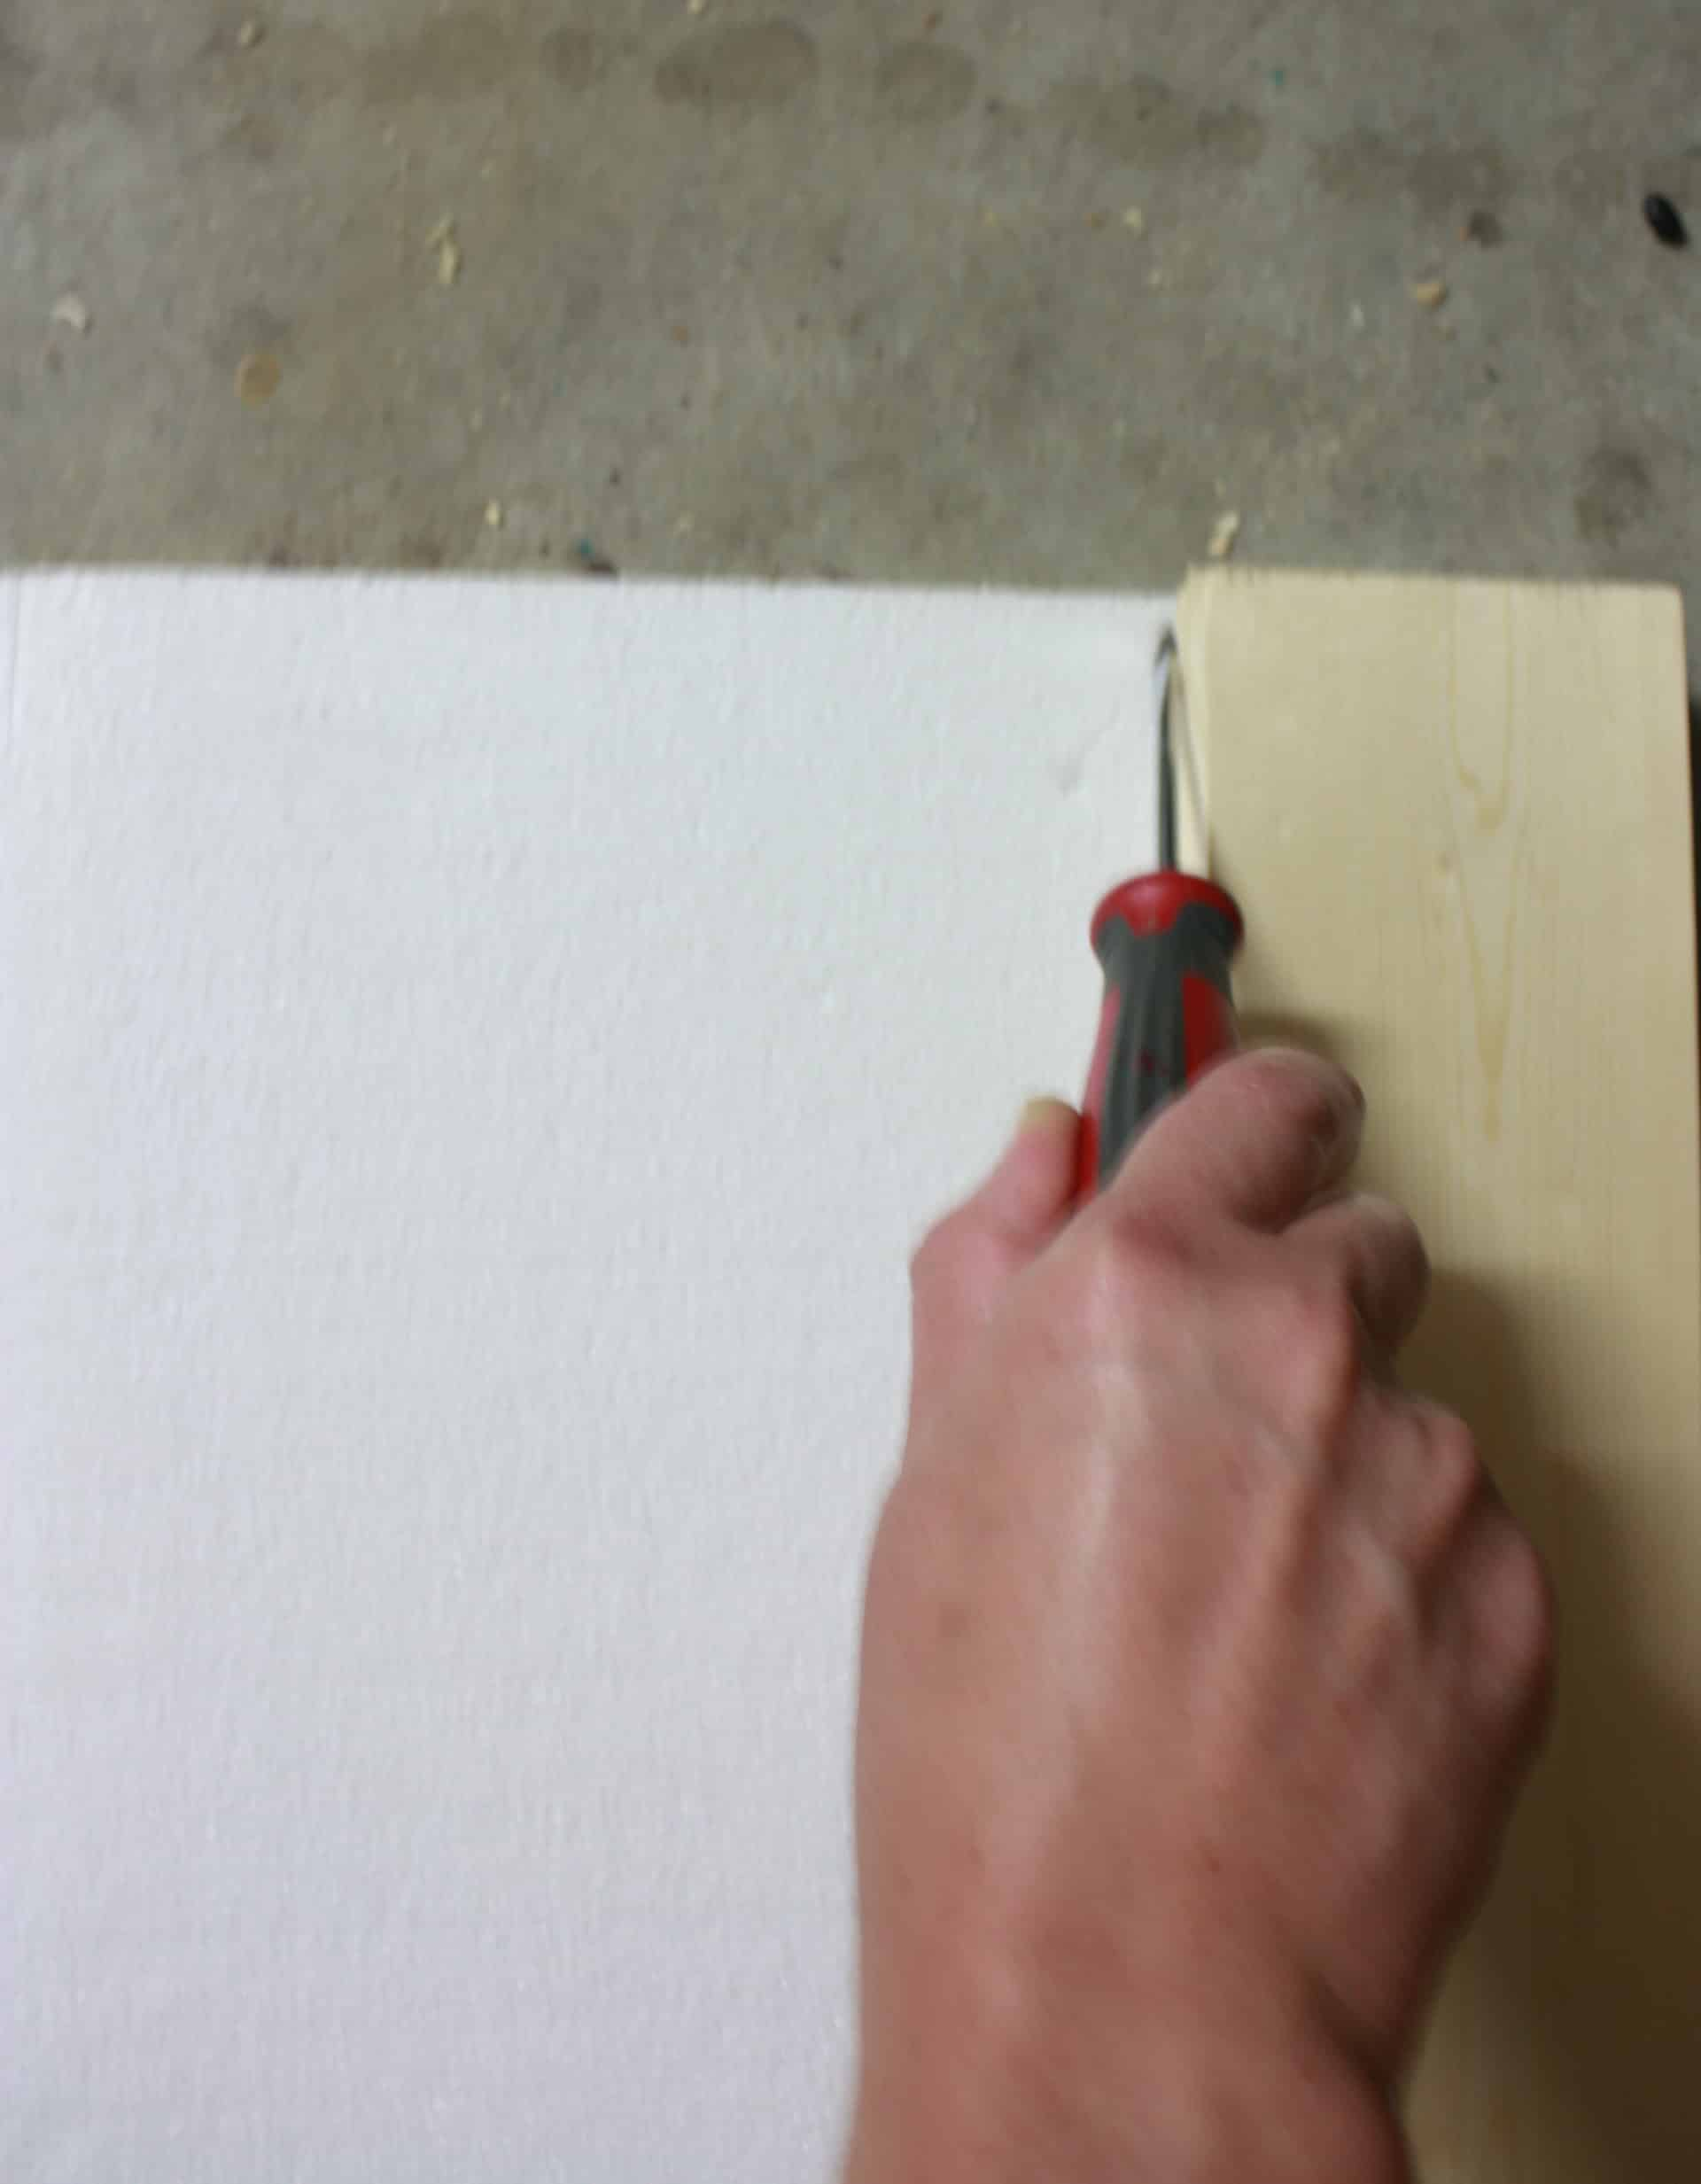 Cutting styrofoam for the wooden floral vase for table decor